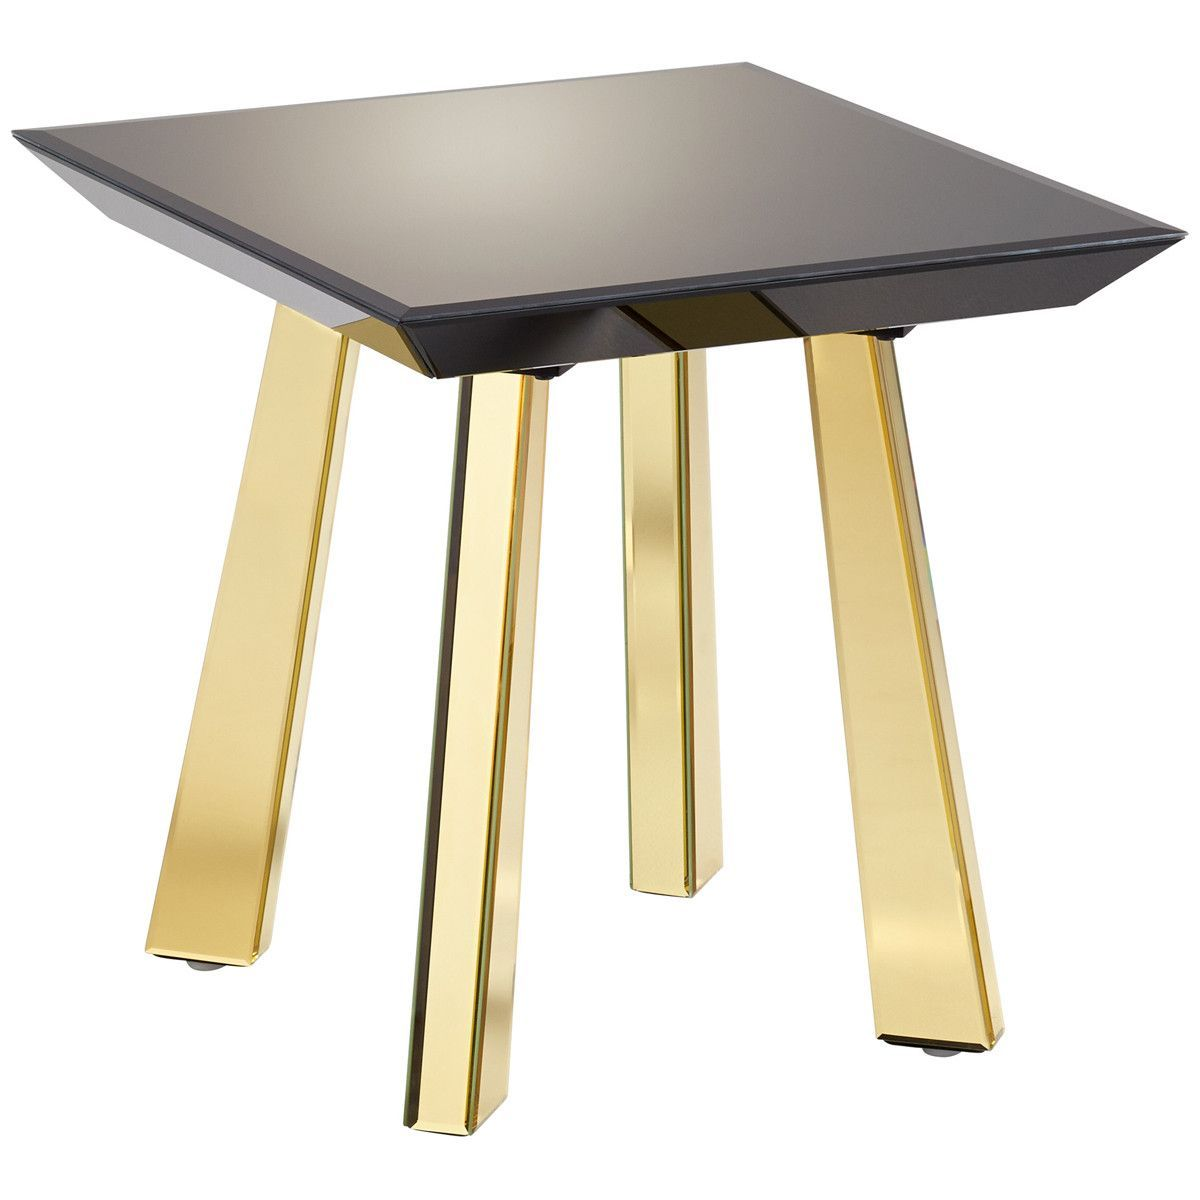 yel table mini ideas tables lamps end threshold design tiffany lighting painting target shades living accent contemporary drum hafley lamp color sma outdoor for room kijiji